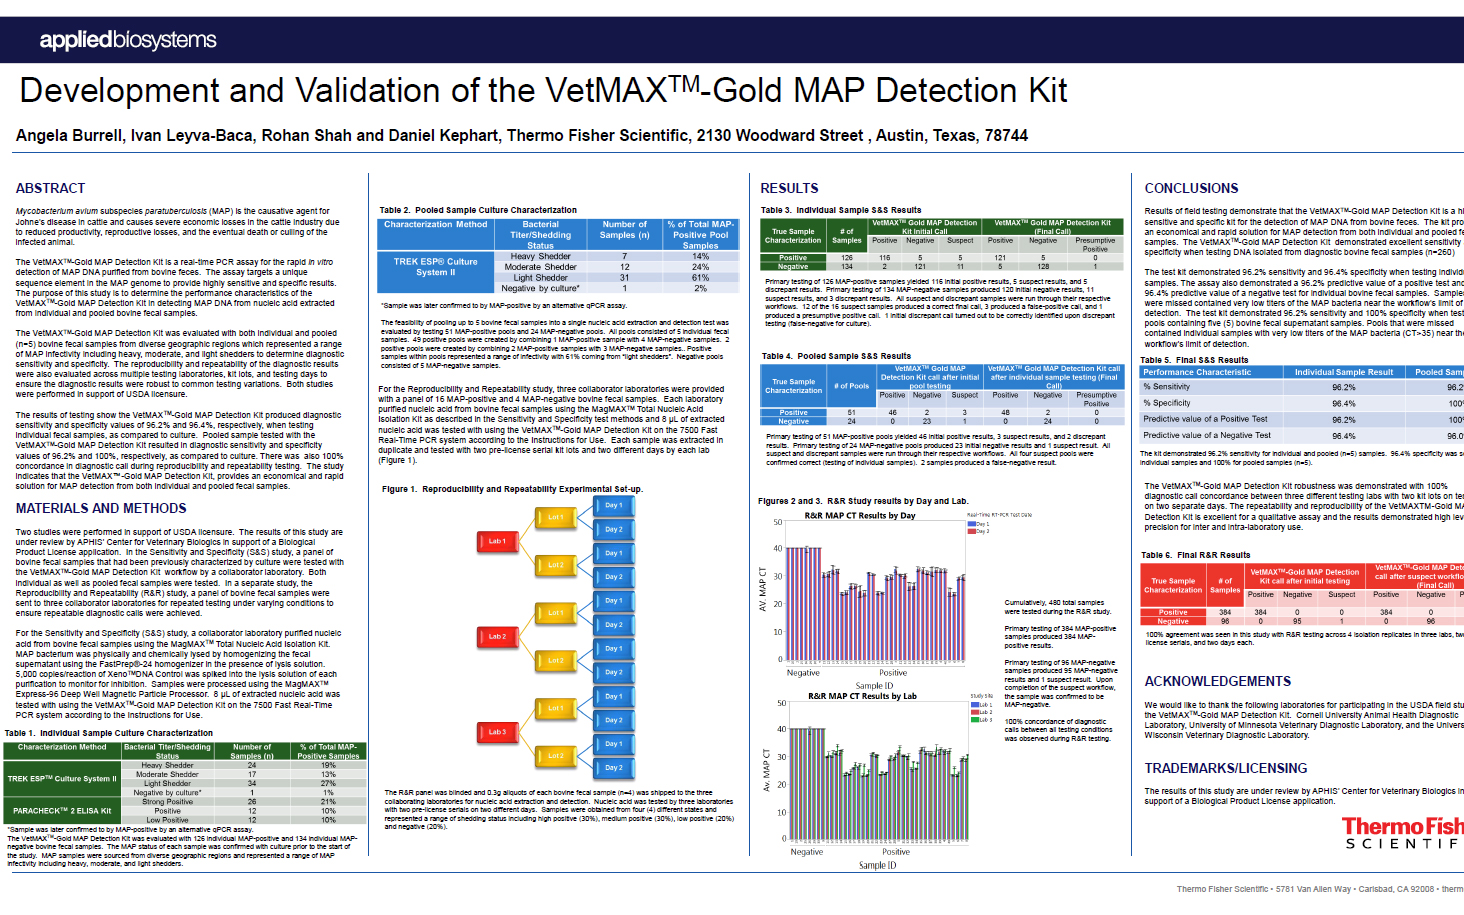 Development and Validation of the VetMAX™-Gold MAP Detection Kit